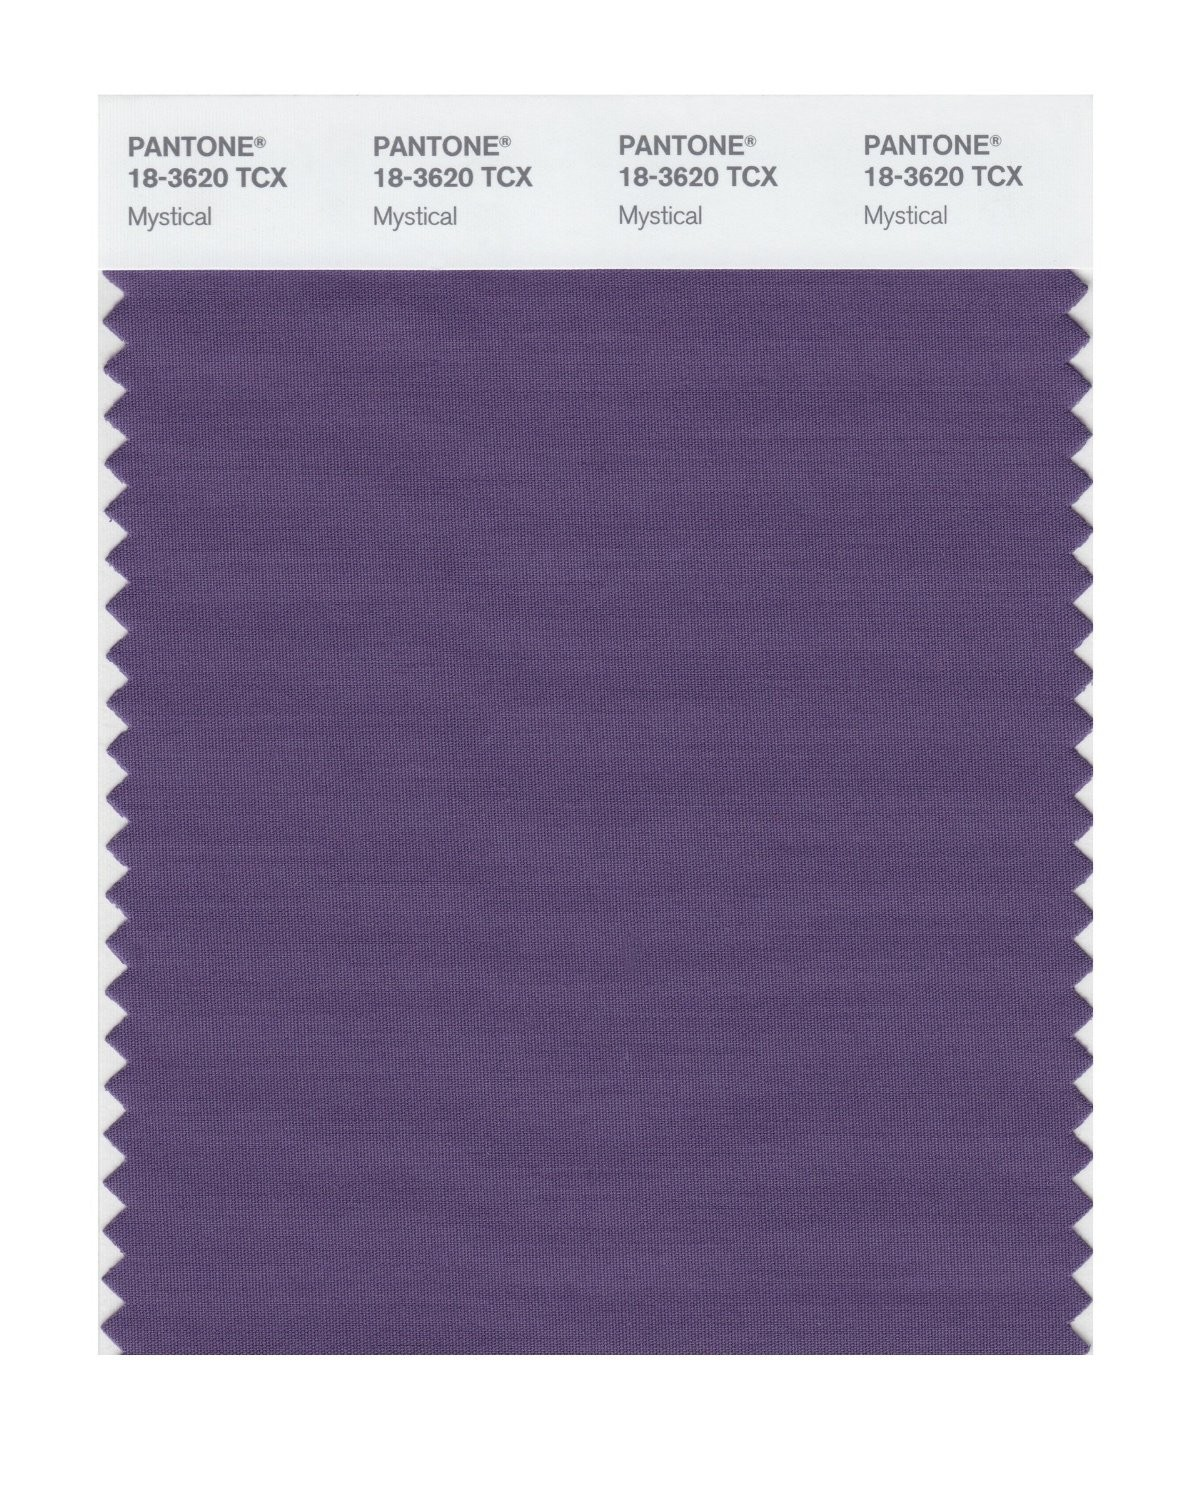 Pantone 18-3620 TCX Swatch Card Mystical